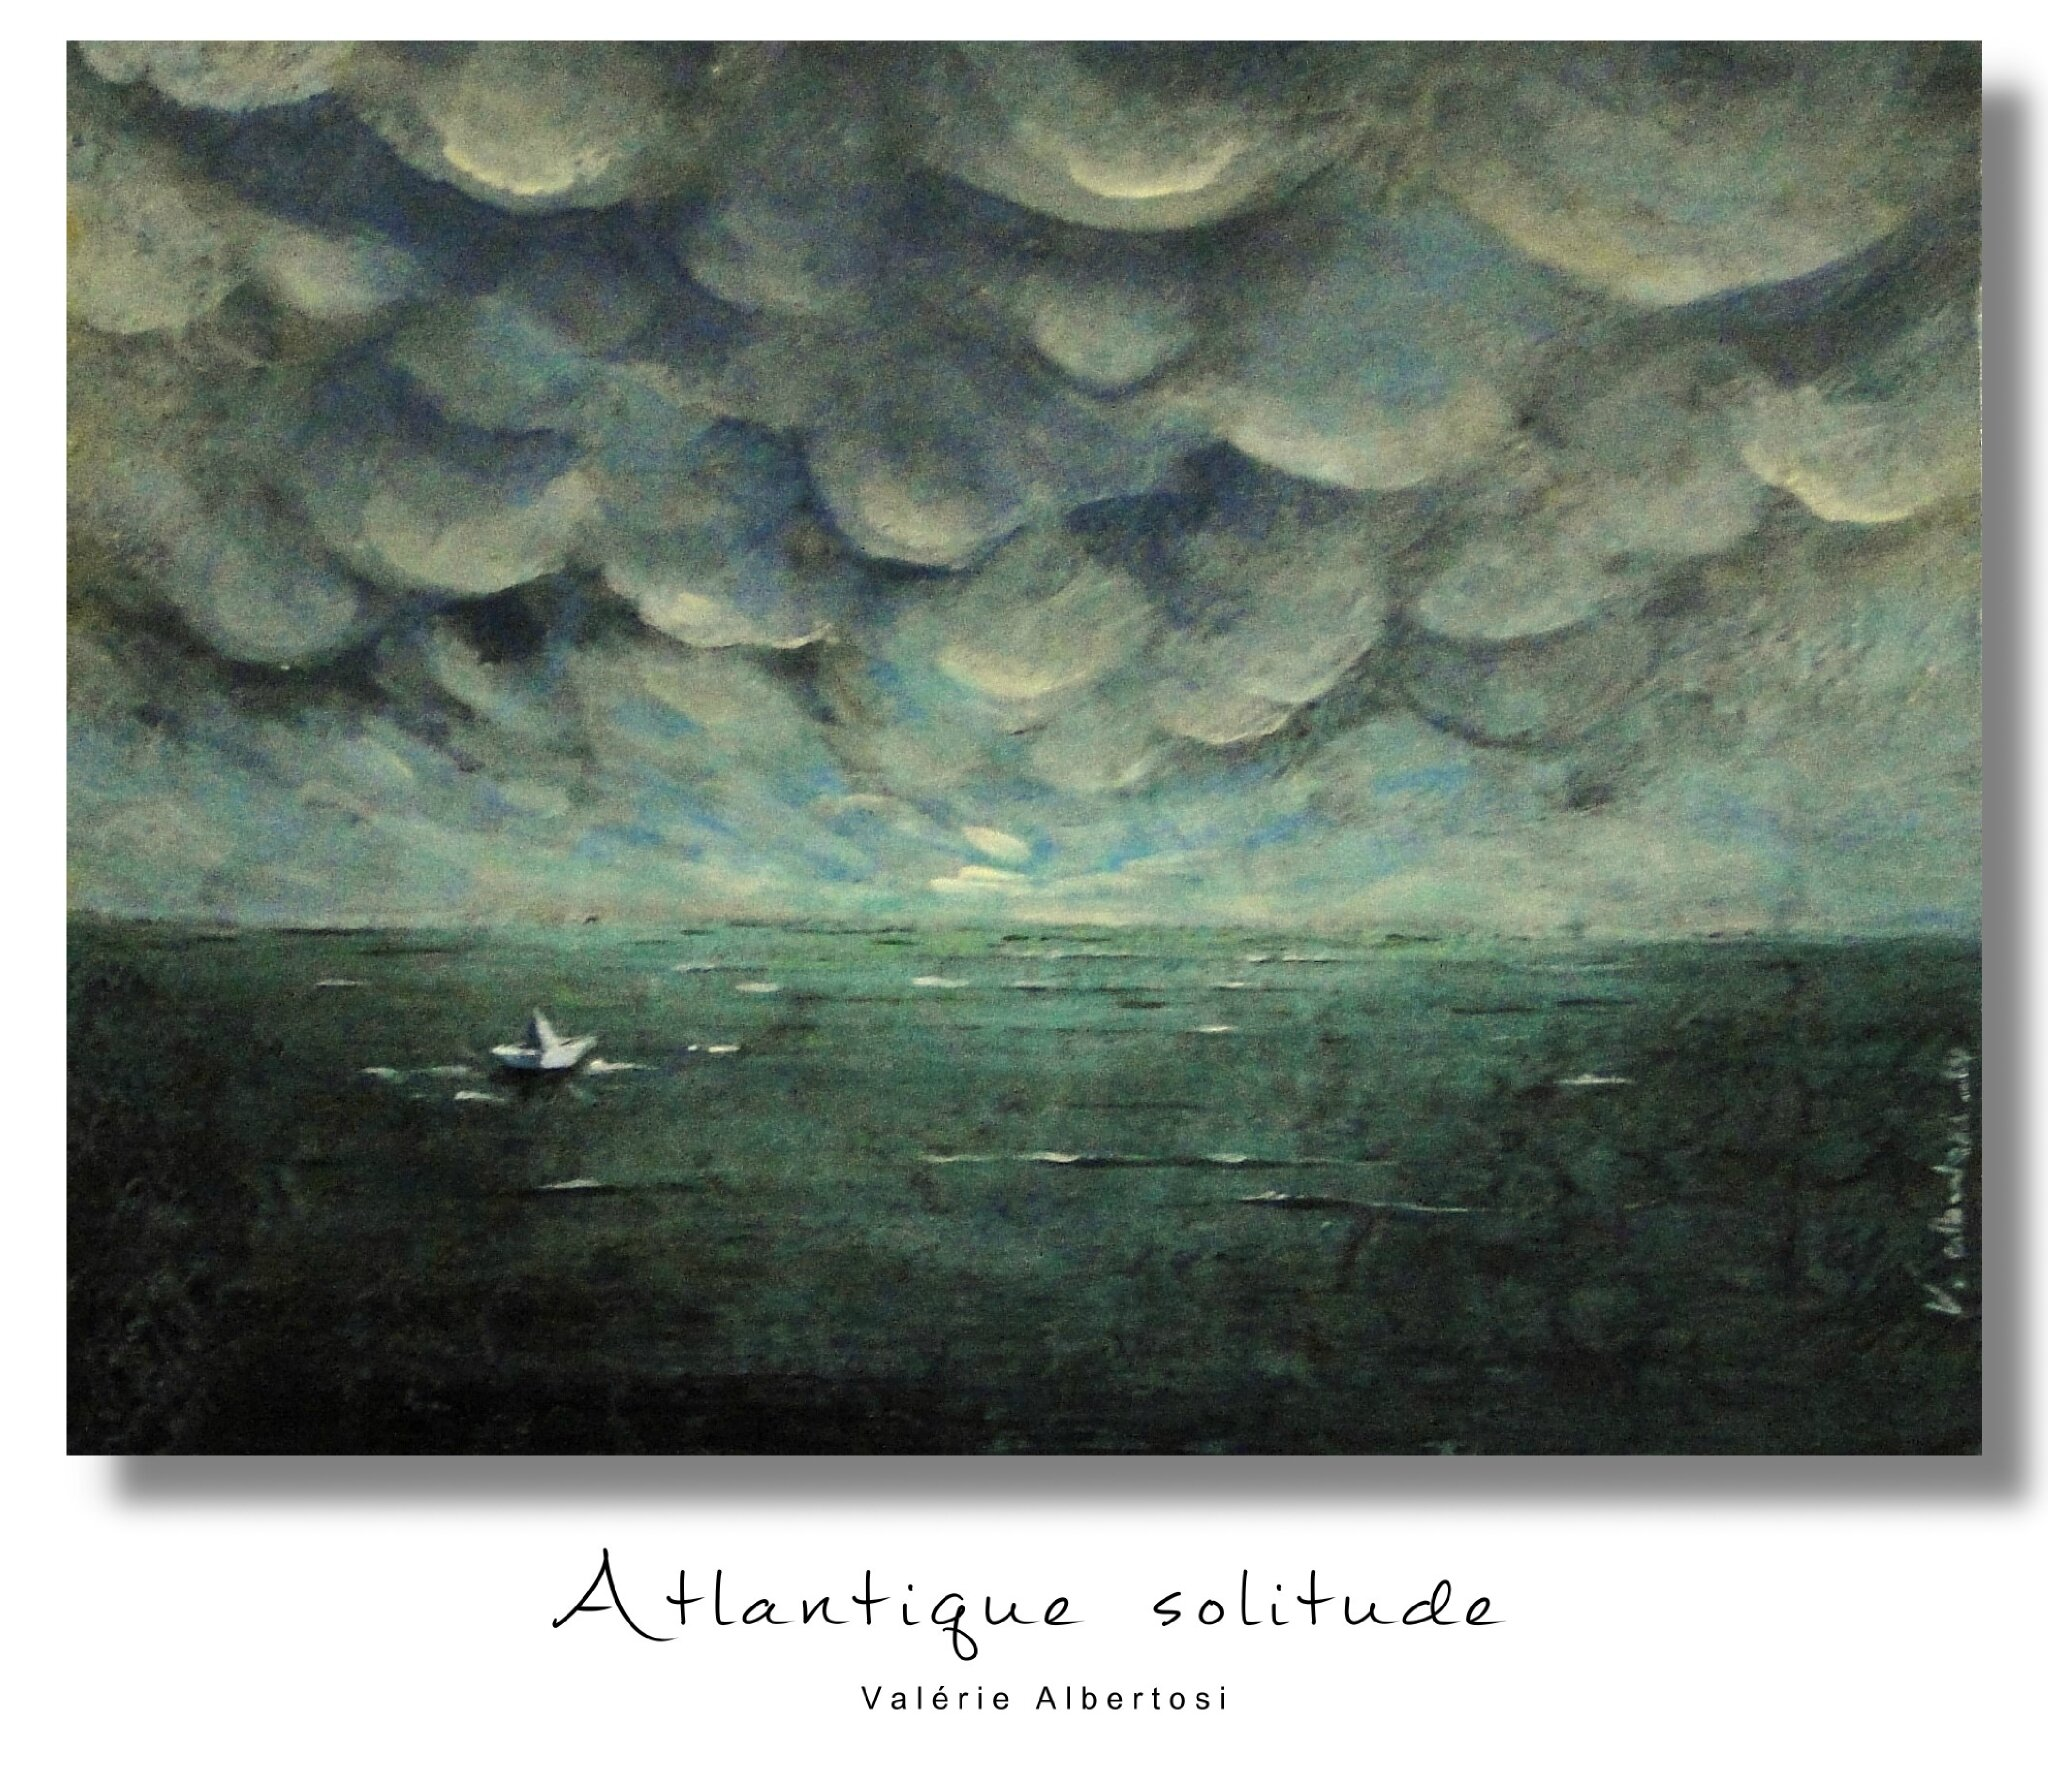 atlantique solitude tableau mer ocean ciel nuages orage valerie albertosi photo de mes toiles. Black Bedroom Furniture Sets. Home Design Ideas